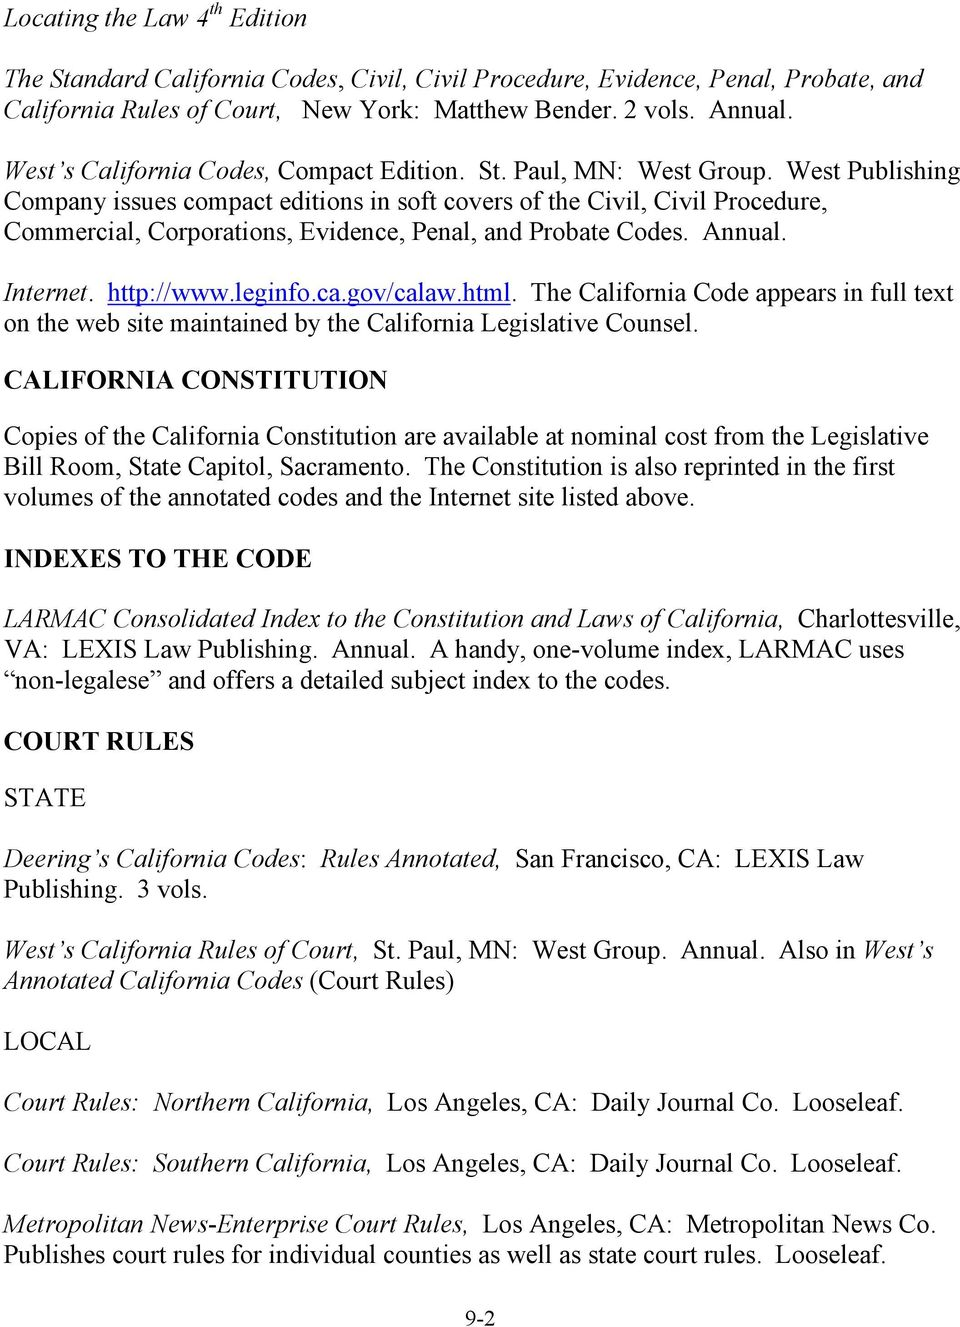 gov/calaw.html. The California Code appears in full text on the web site maintained by the California Legislative Counsel.